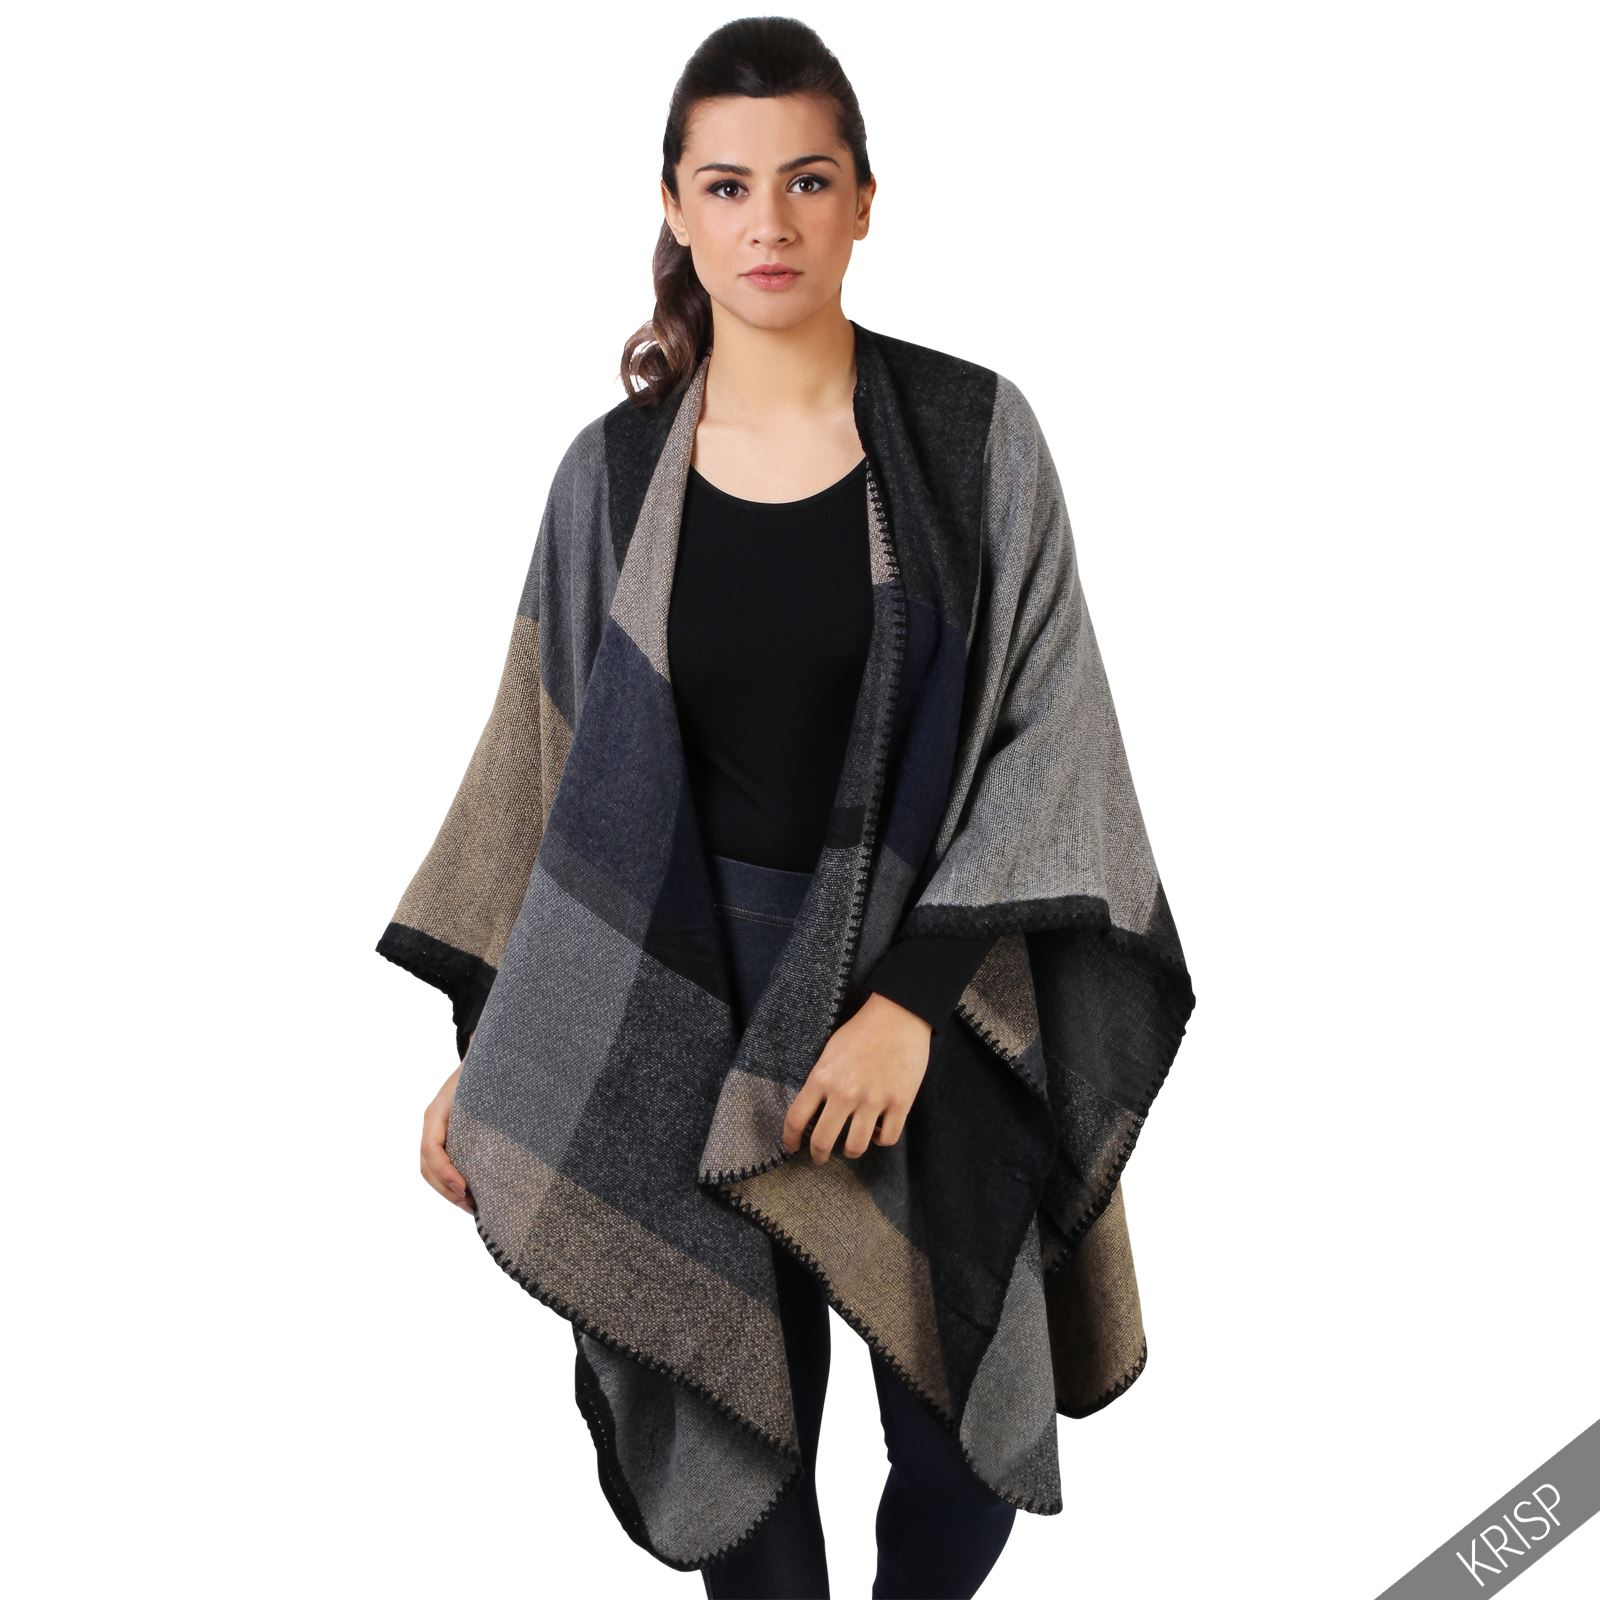 femmes poncho cape echarpe jacket manteau blouson sans manche carreaux fleurs. Black Bedroom Furniture Sets. Home Design Ideas